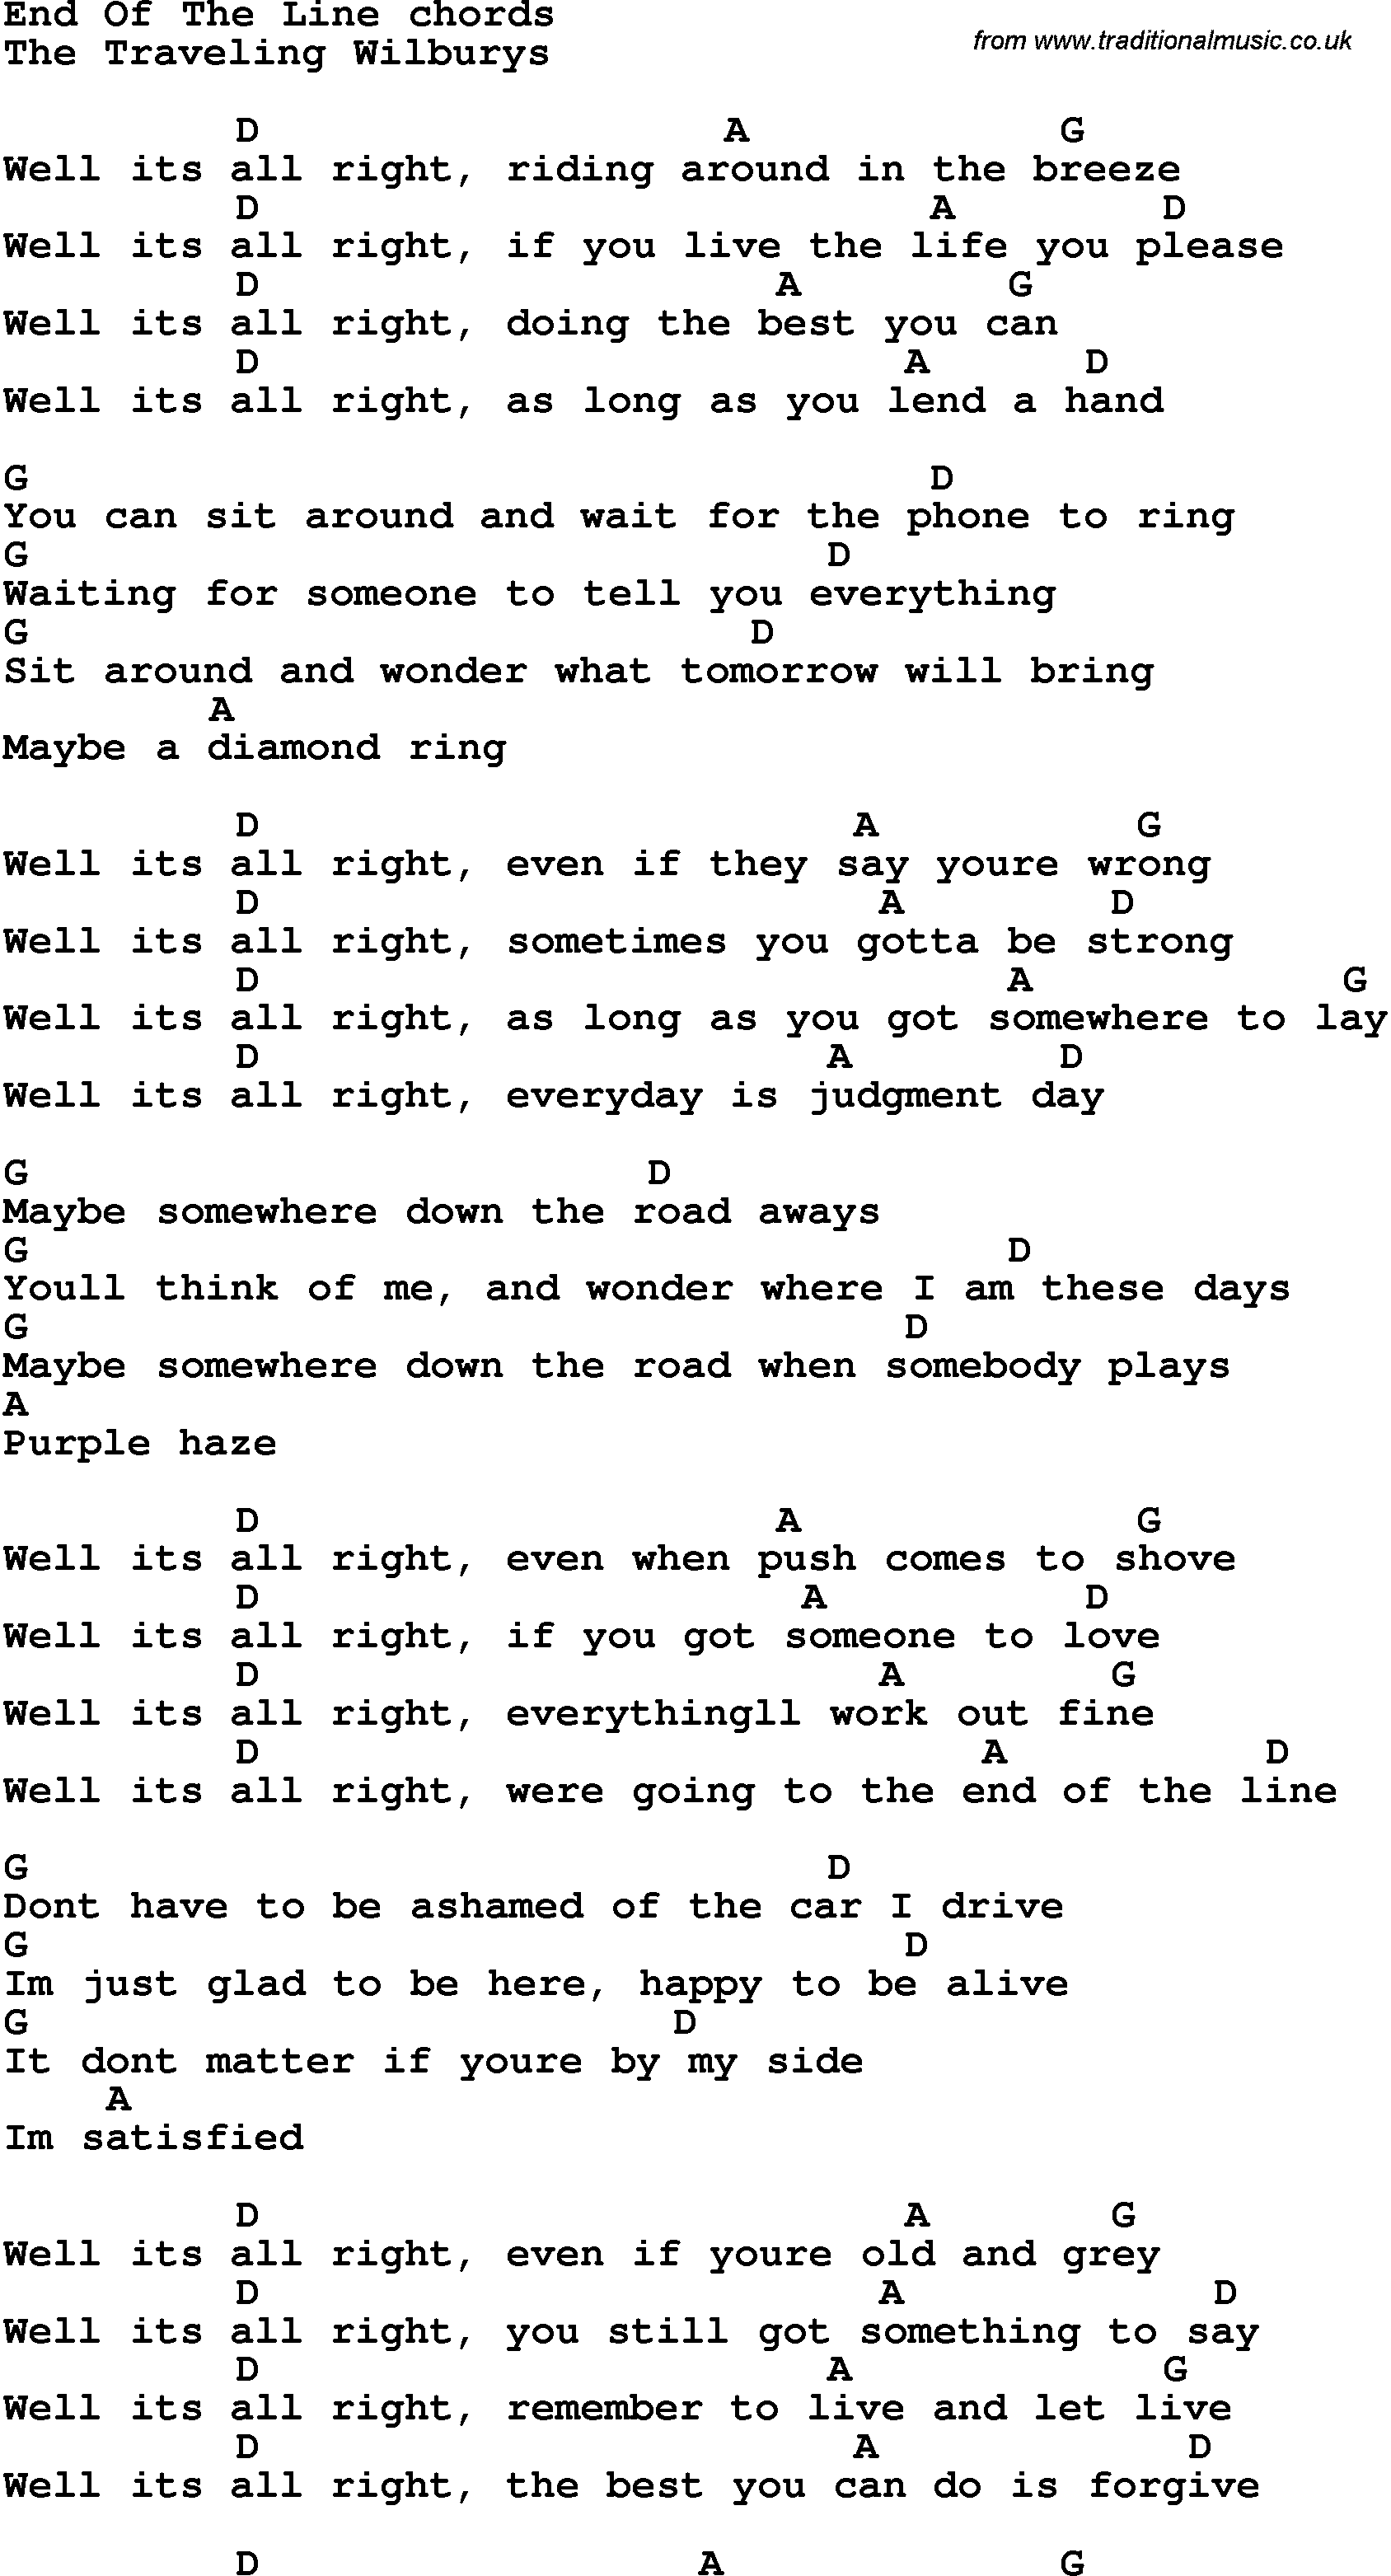 Traveling Wilburys End Of The Line Guitar Chords Myvacationplan